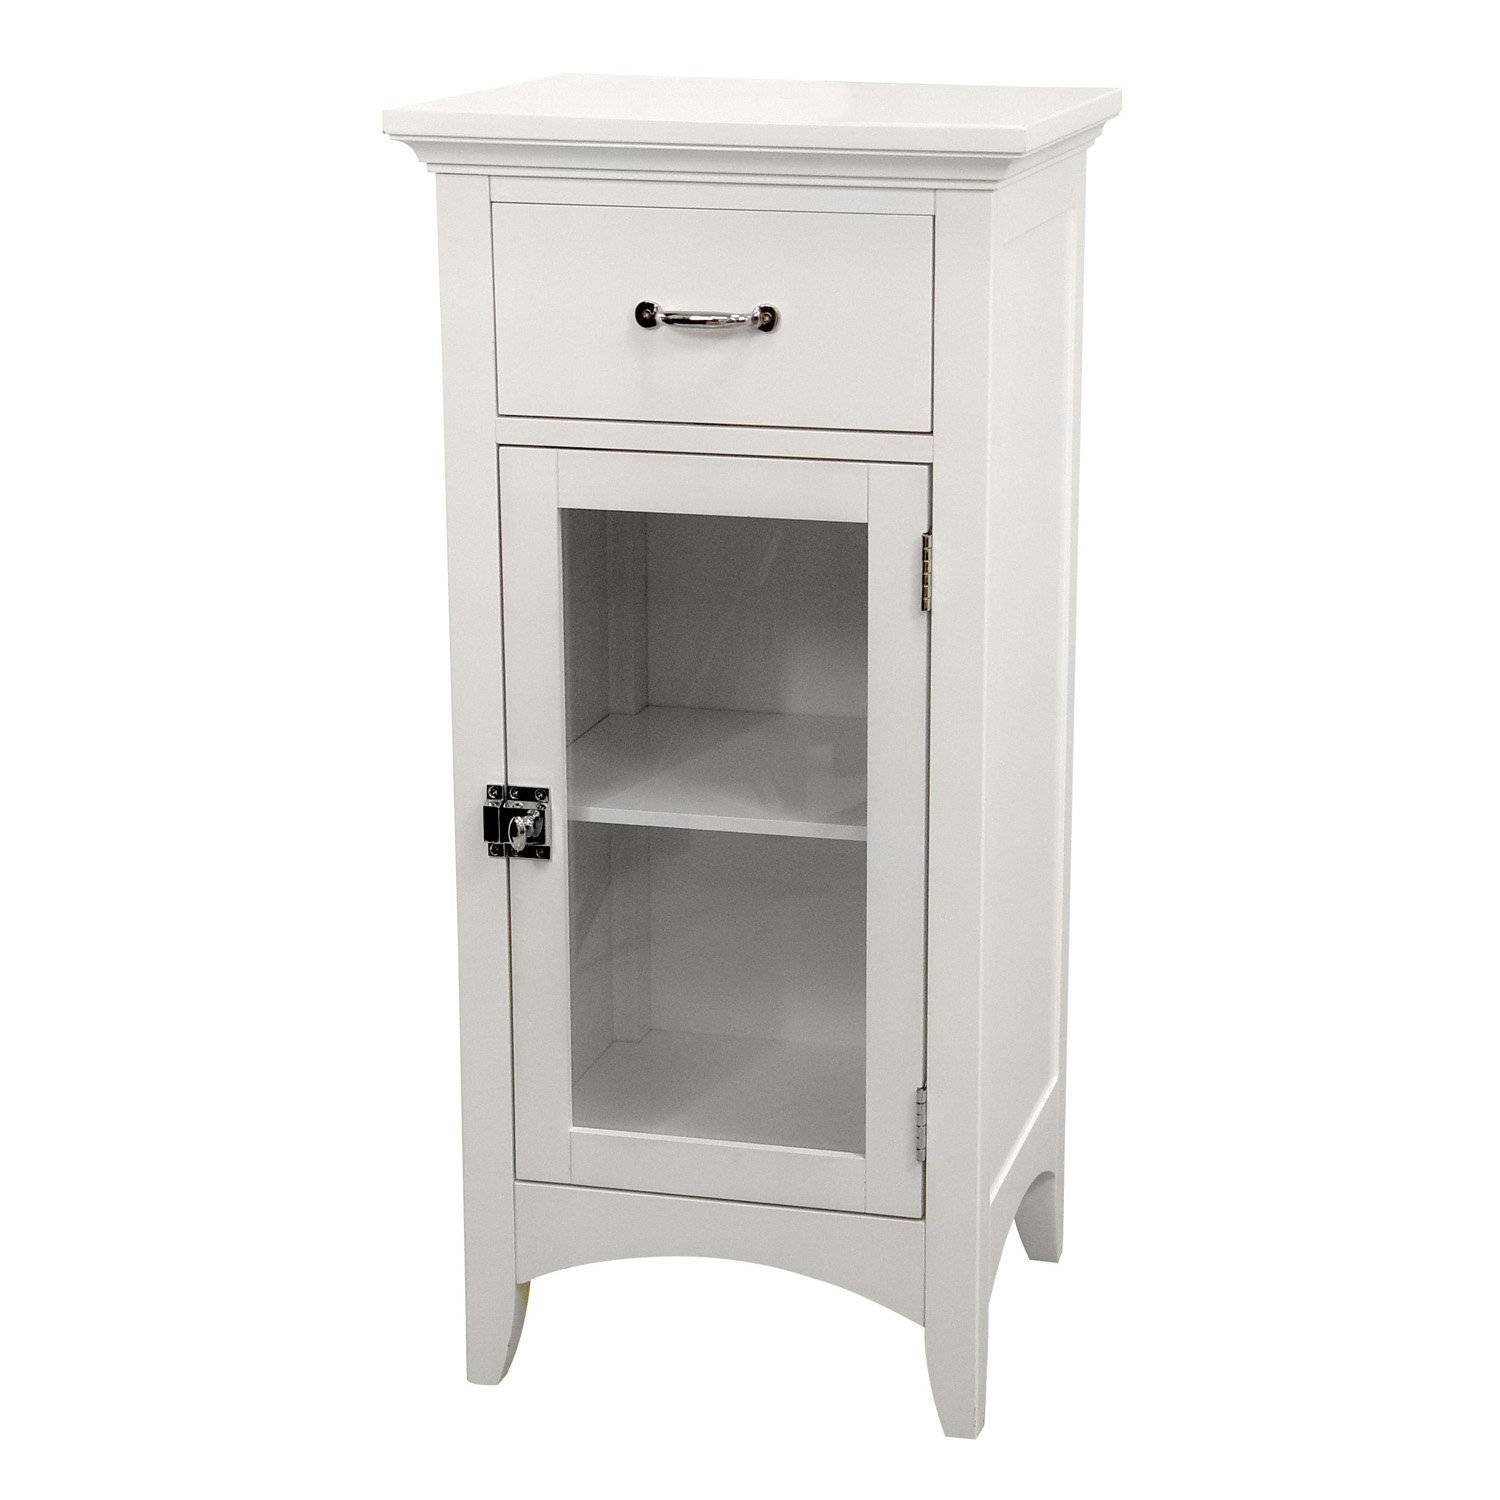 Elegant Home Fashions Madison Collection Shelved Floor Cabinet with Drawer, White